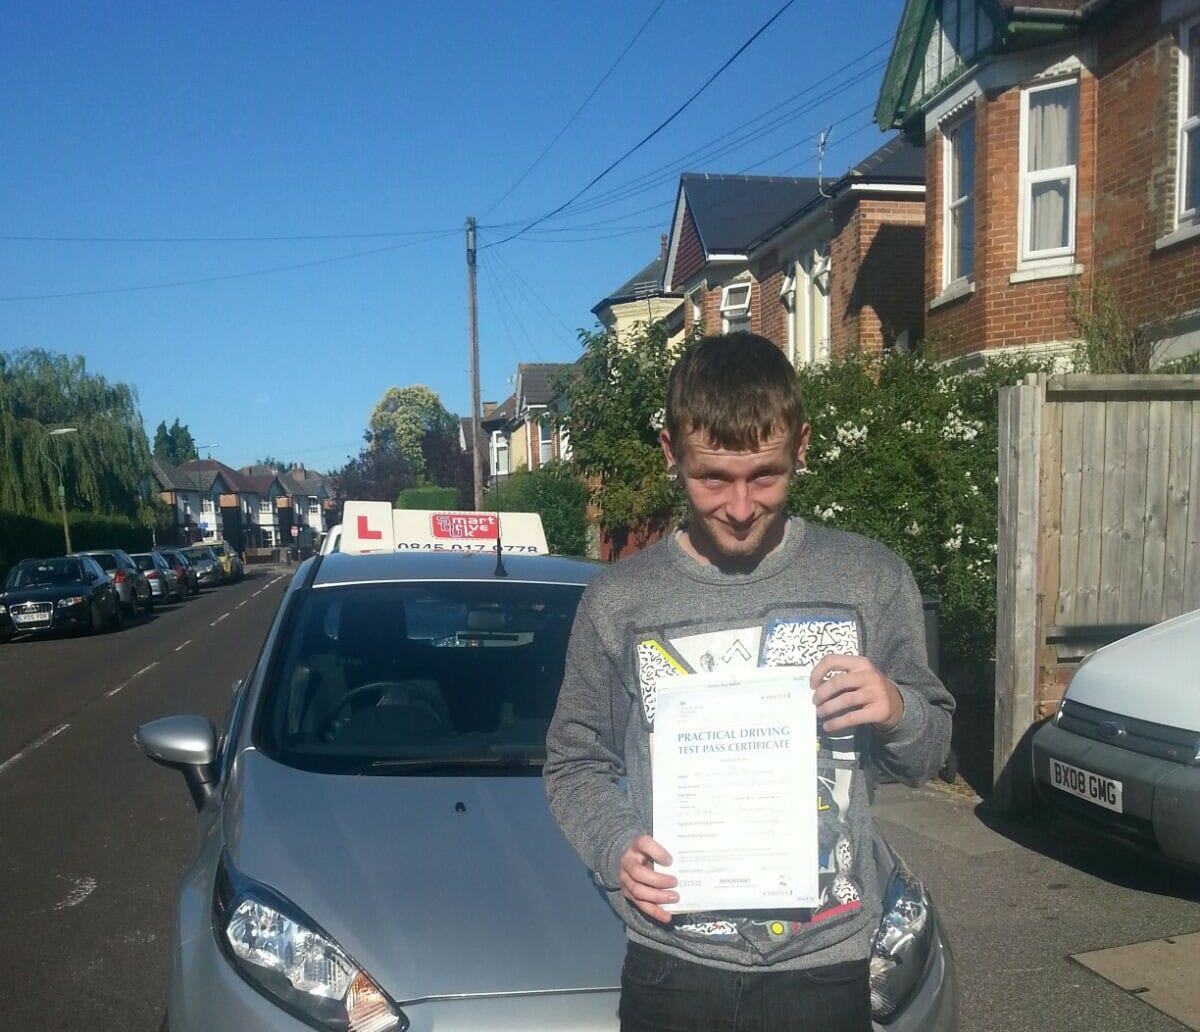 Congratulations to Liam from Bournemouth